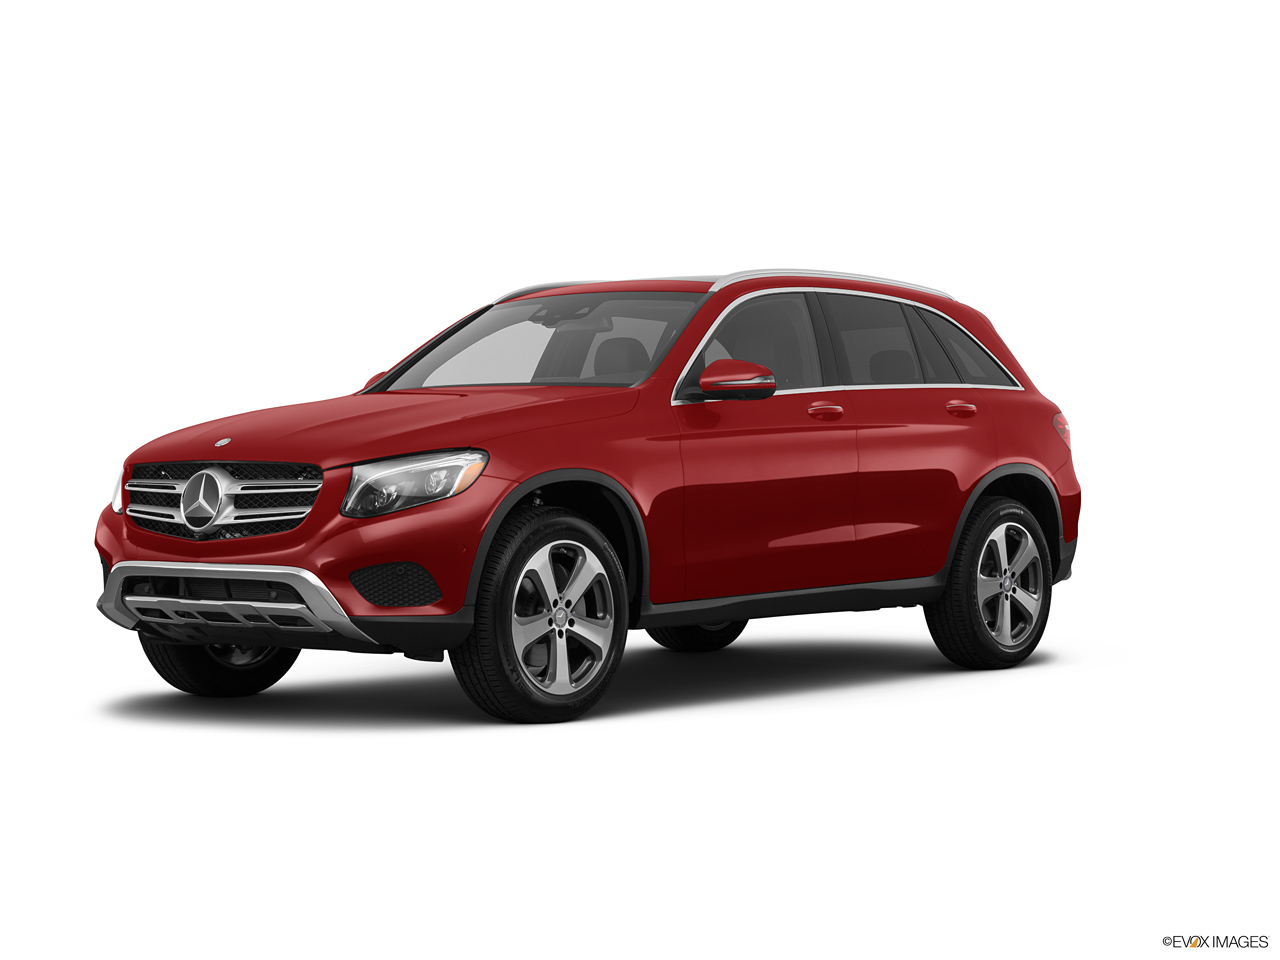 Car pictures list for mercedes benz glc class 2017 43 amg for Mercedes benz list